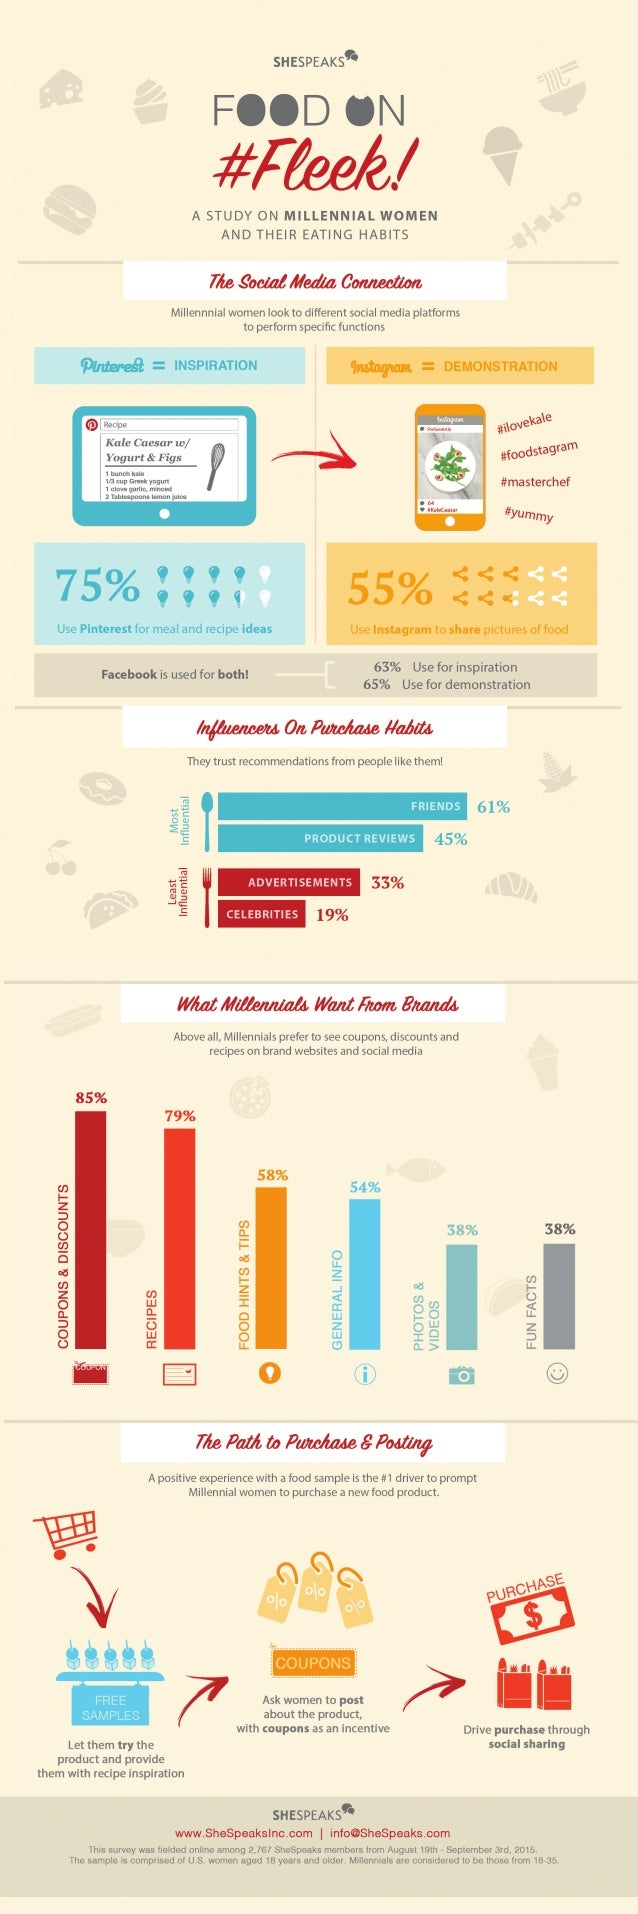 """sHEspEAKs9i  F' DIN  .  __— - A  fi_,   . l,l ' +1-""""  '77""""'l IILzI' Ql . /d  A STUDY ON MILLENNIAL WOMEN AND THEIR EATING H..."""